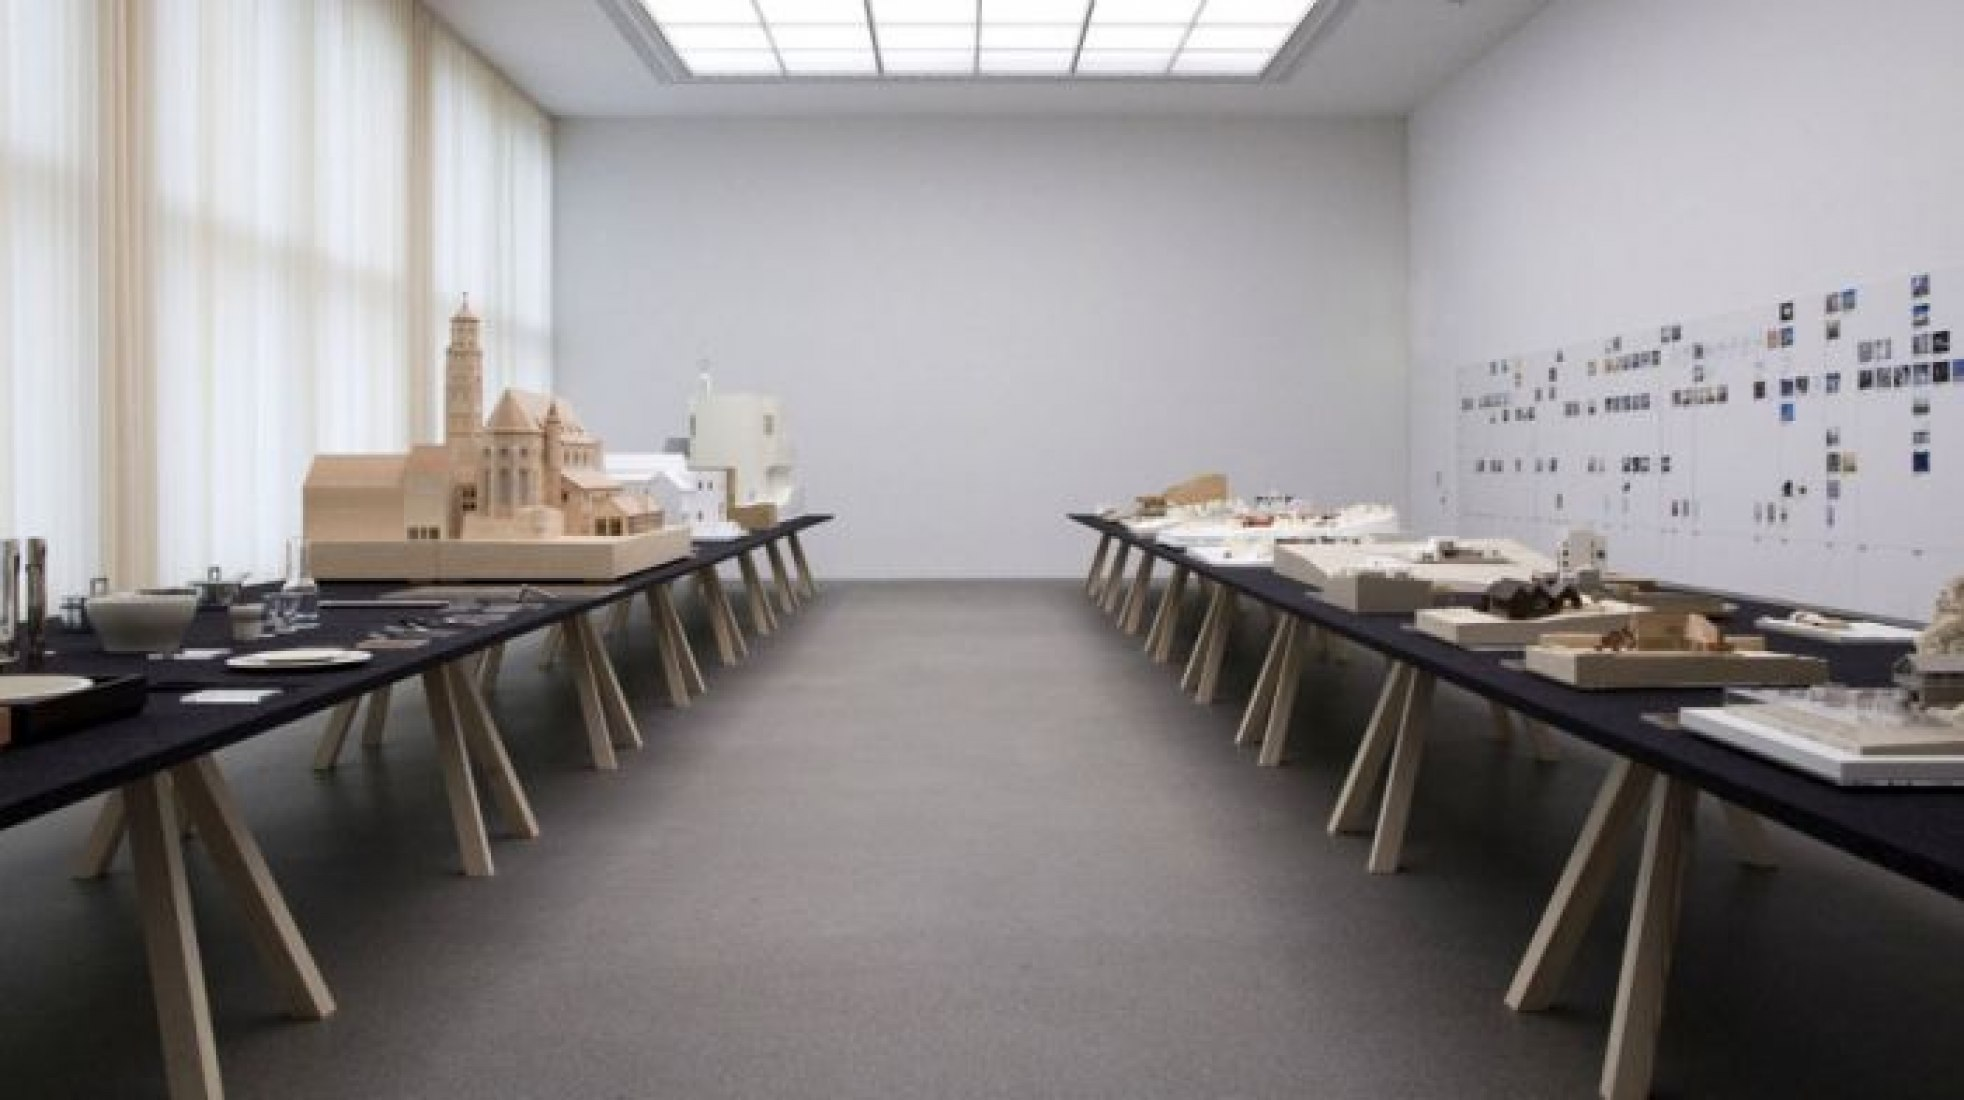 John pawson in germany the strength of architecture for Munchen architekturmuseum